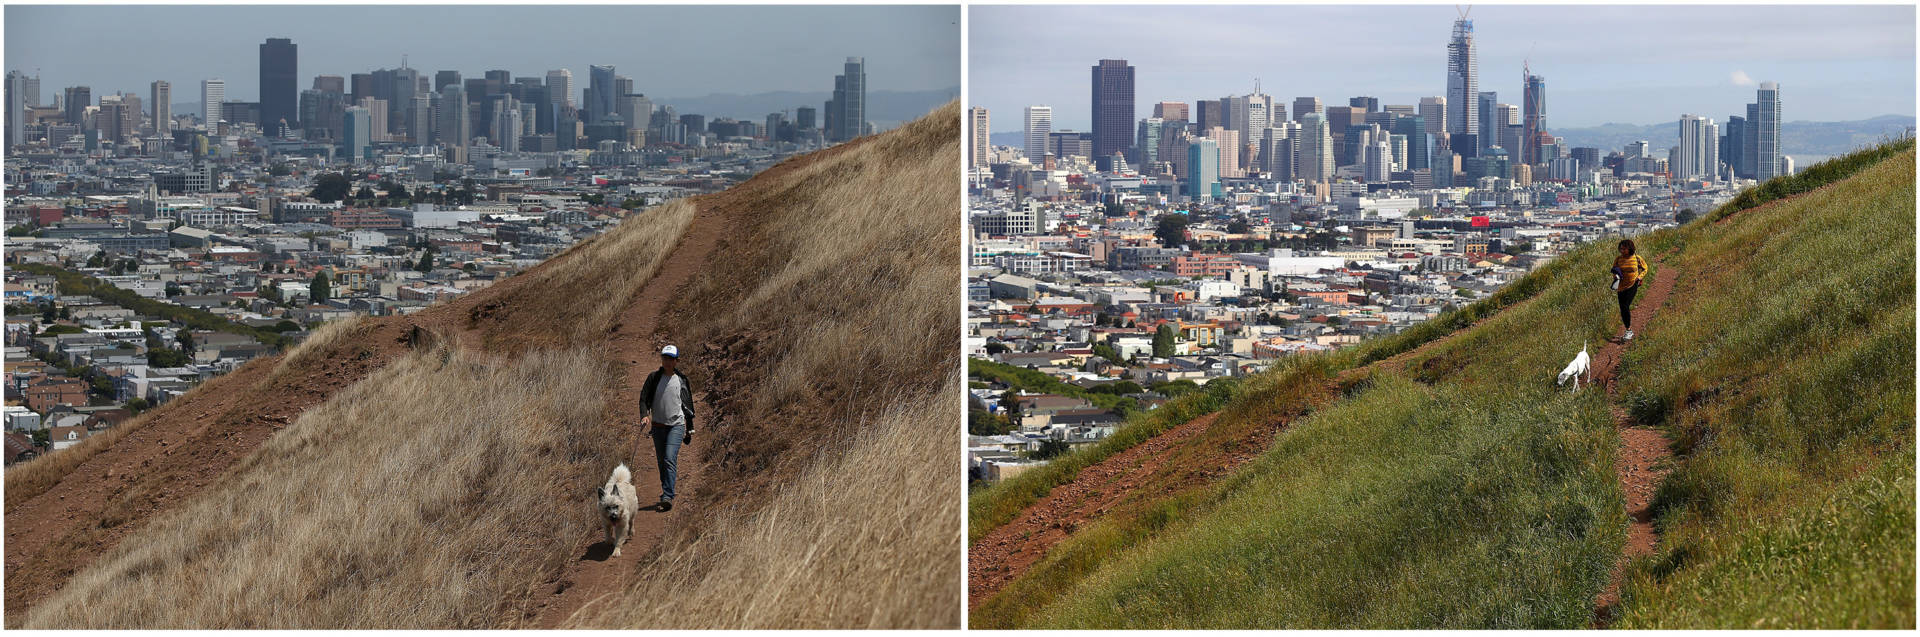 A dog walker on a dried section of Bernal Heights Park in 2014 in San Francisco (left). When Sullivan returned to the hillside this year, he was able to snap a photo of a woman walking her dog in almost the exact same spot.